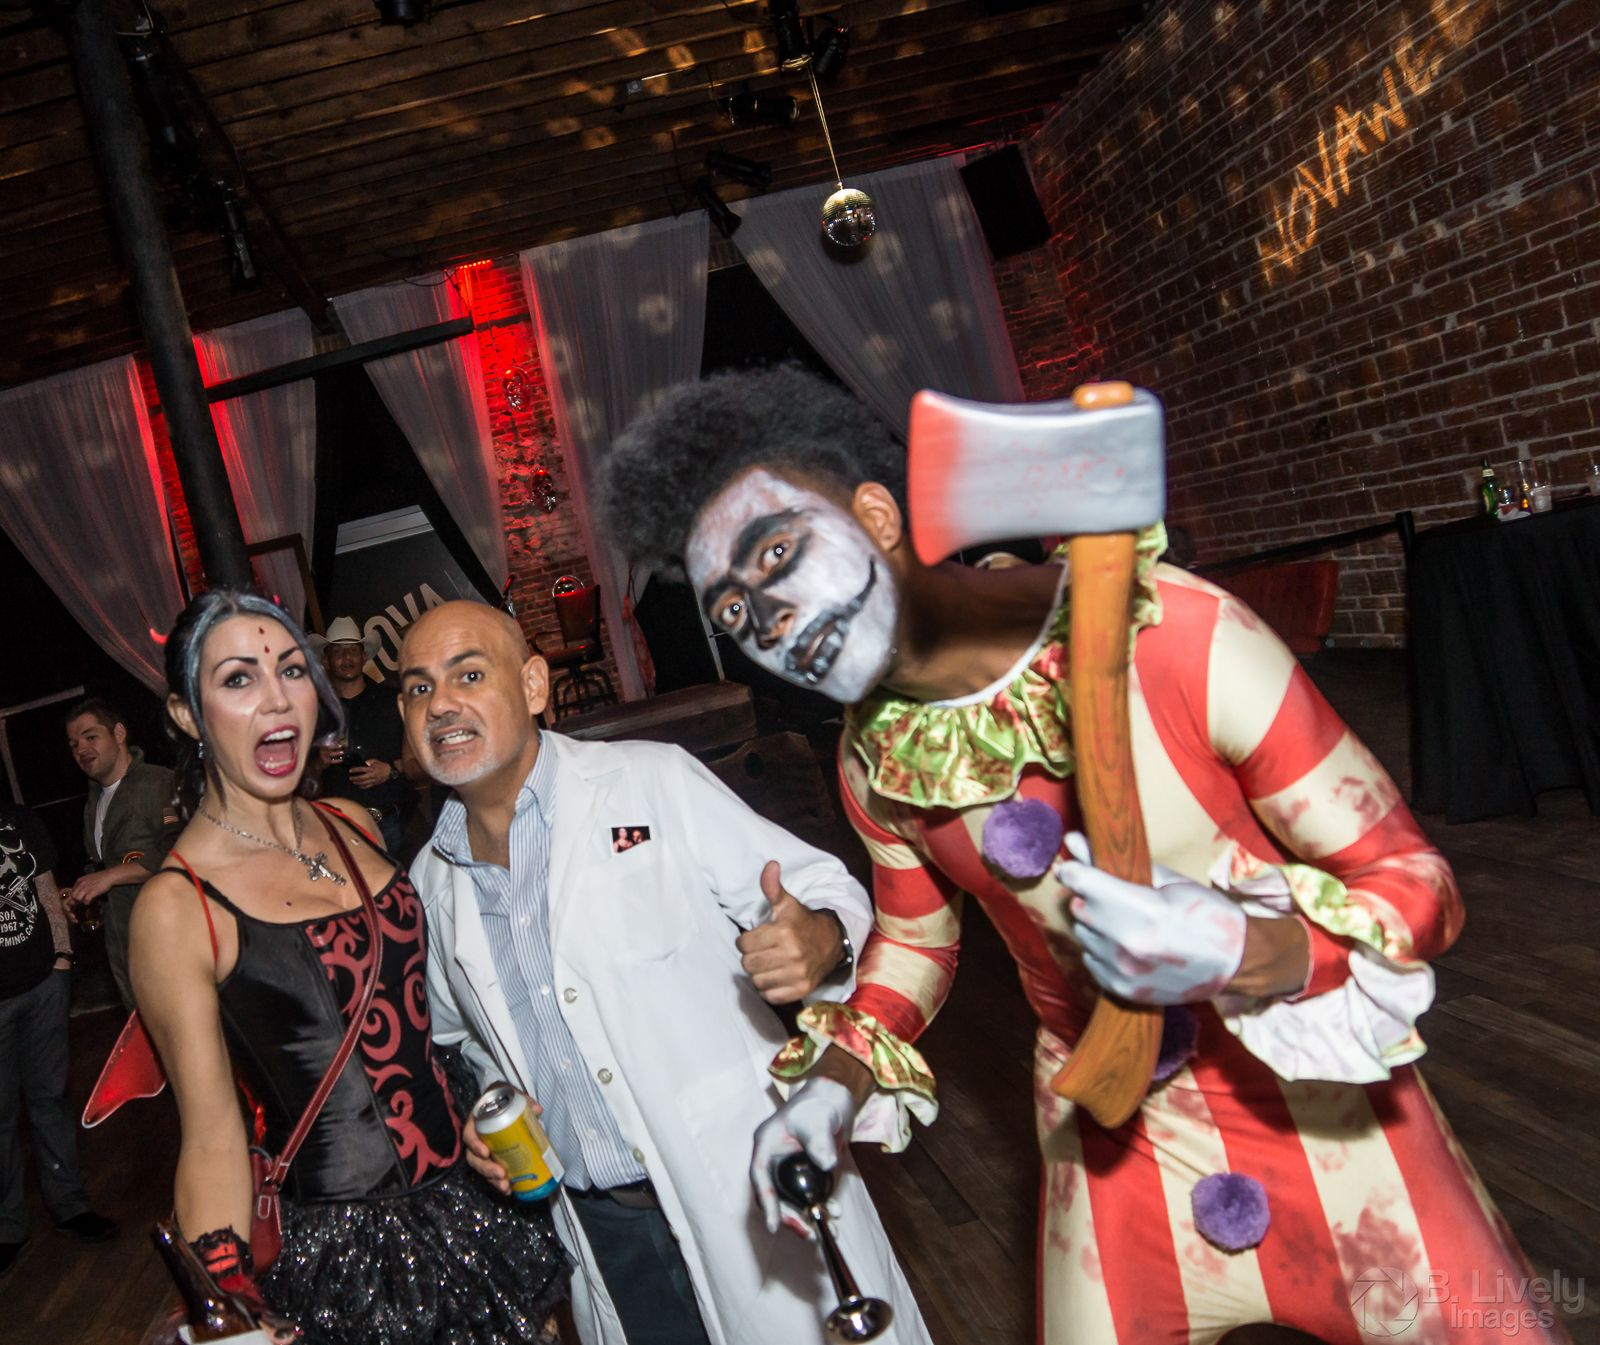 Novaween is St. Pete's favorite adults only Halloween costume party